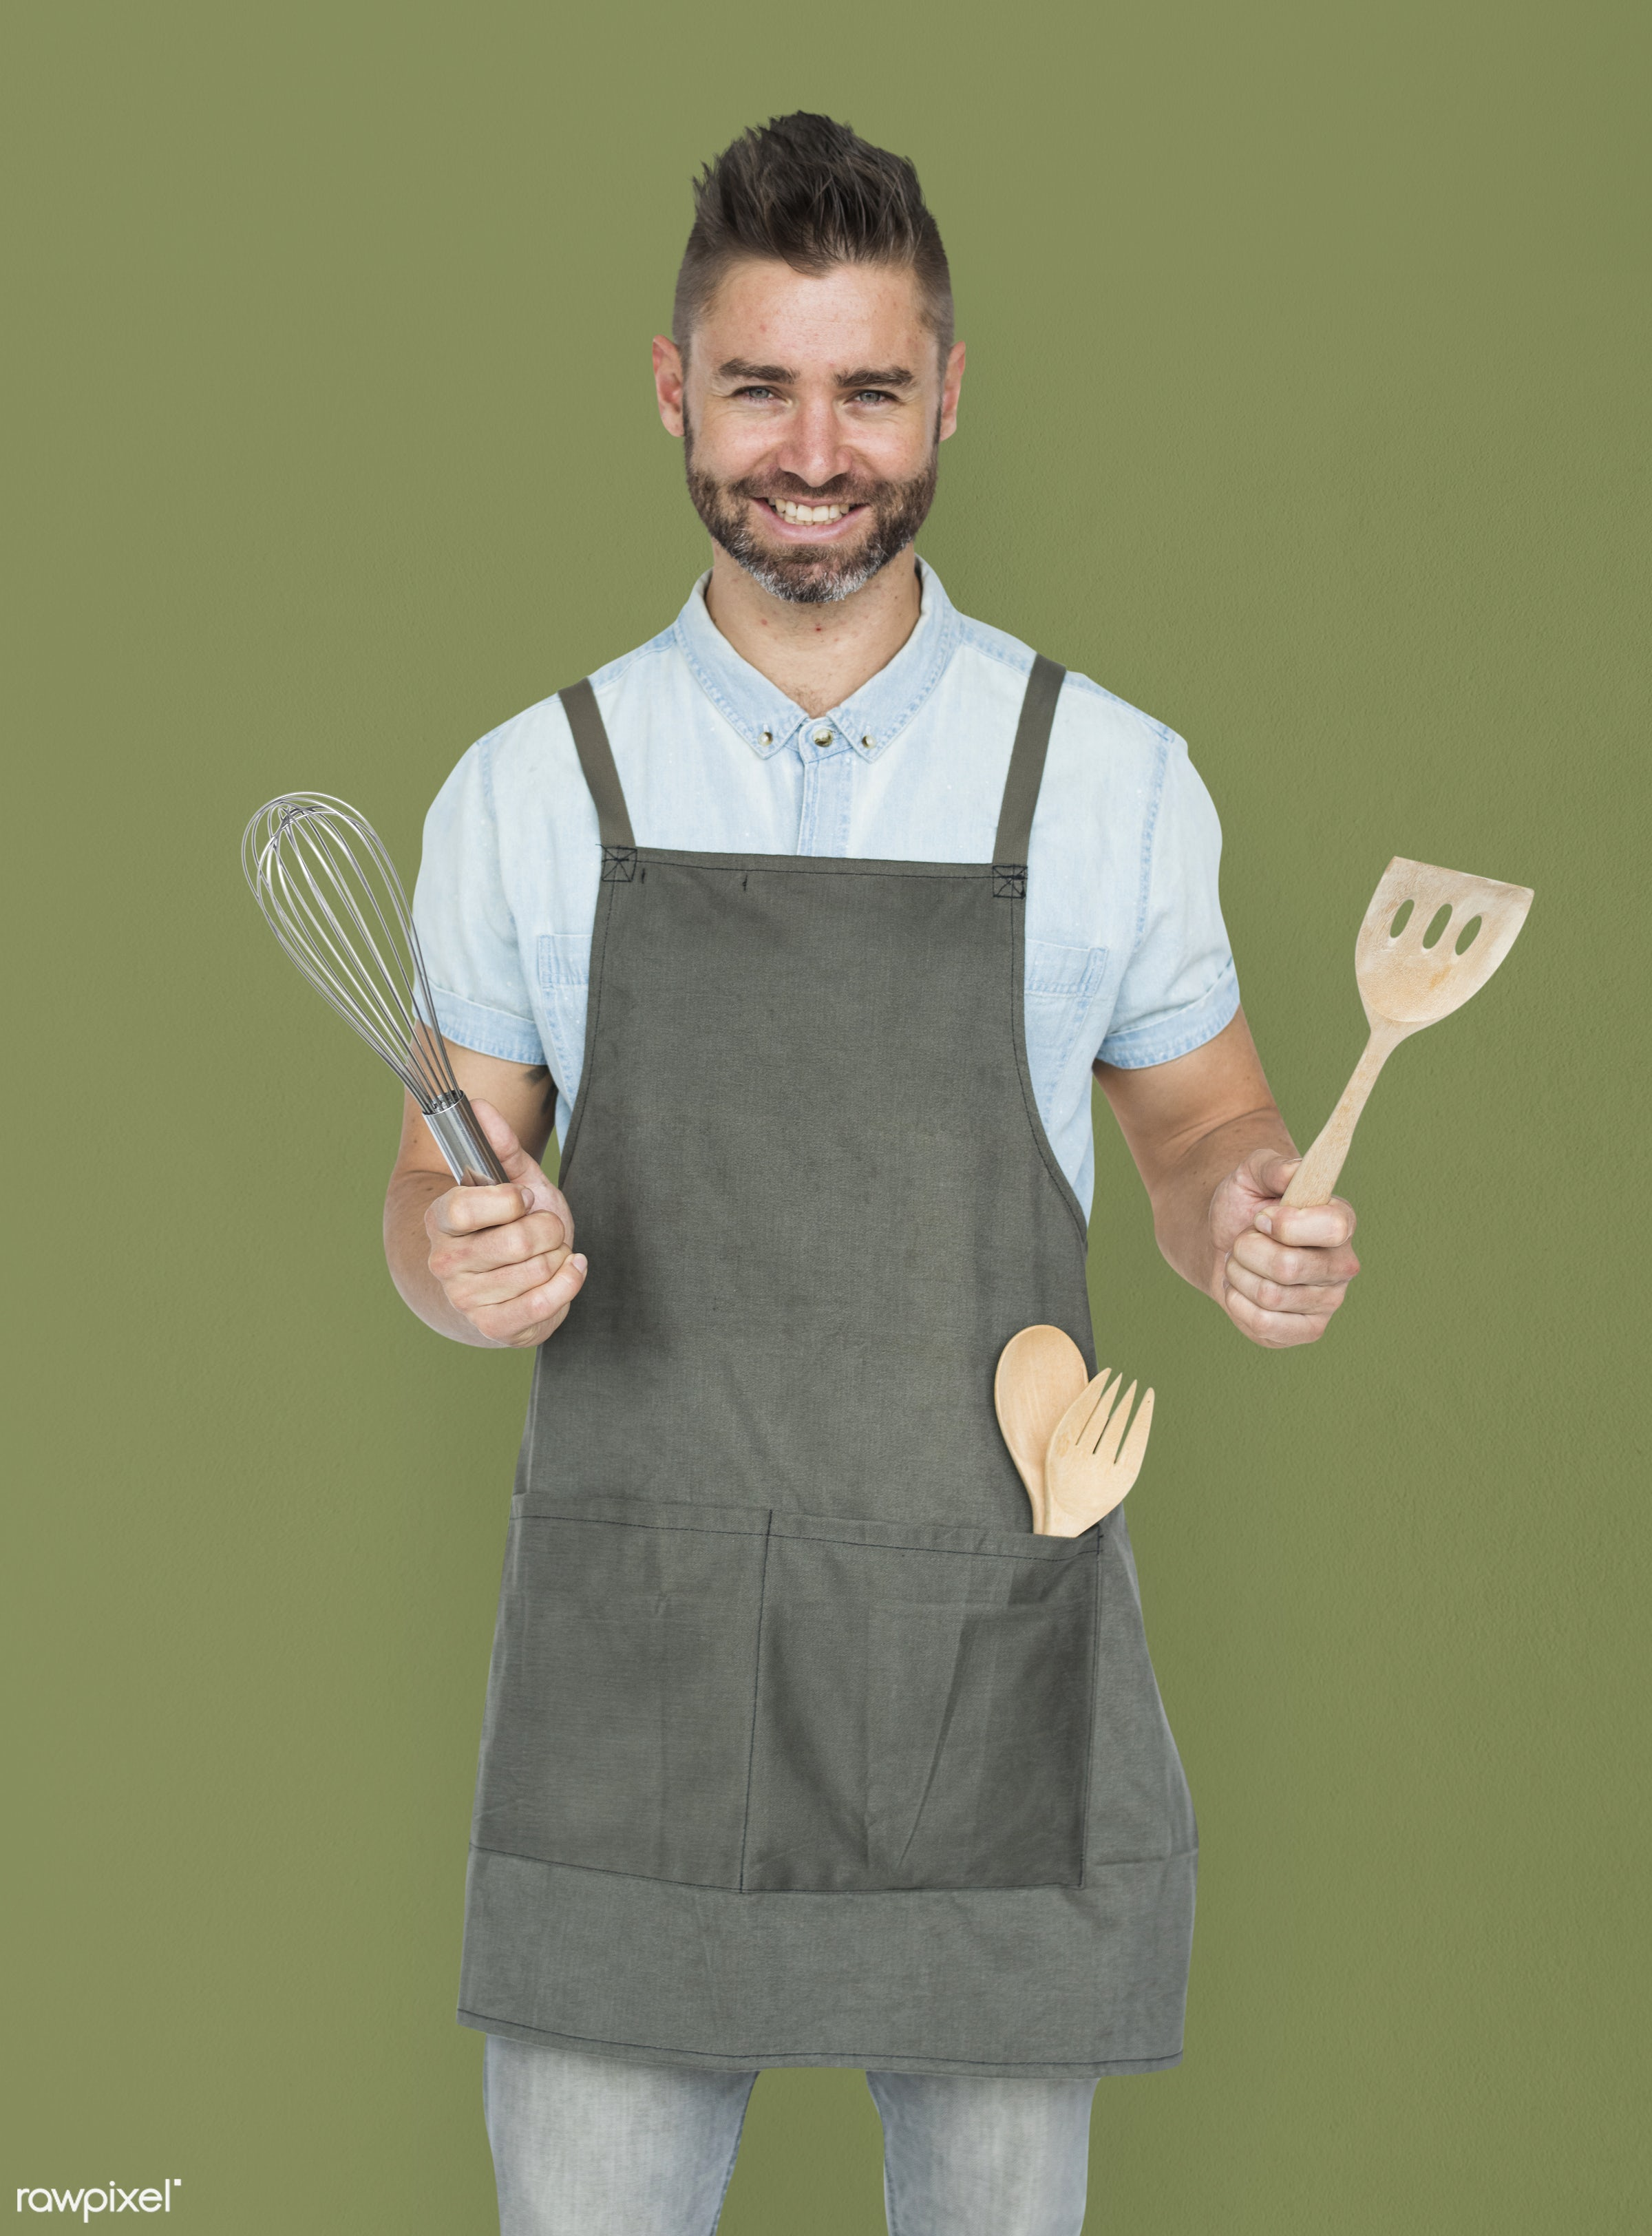 studio, pastel, person, model, race, people, style, solo, lifestyle, casual, beige, cooking, man, isolated, tone, guy, male...